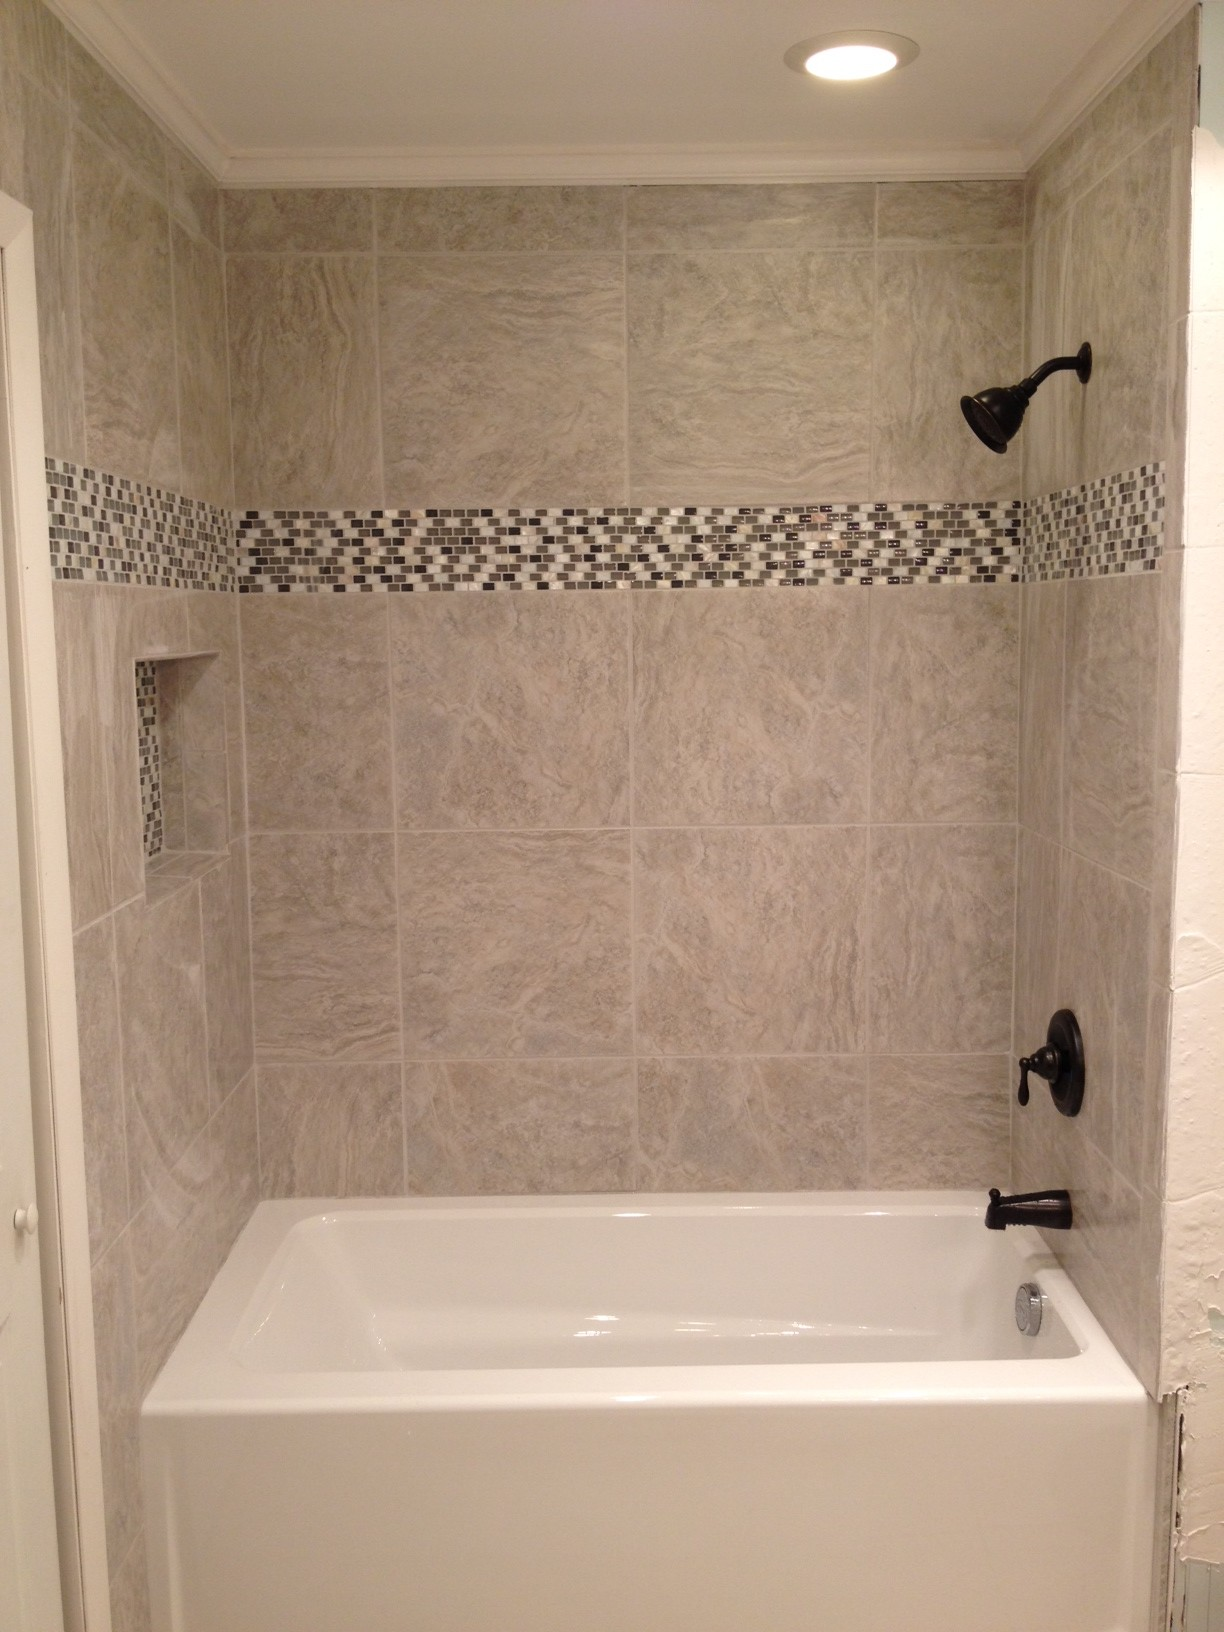 Tile Installation Amp Bath Tub Installation In Maitland FL